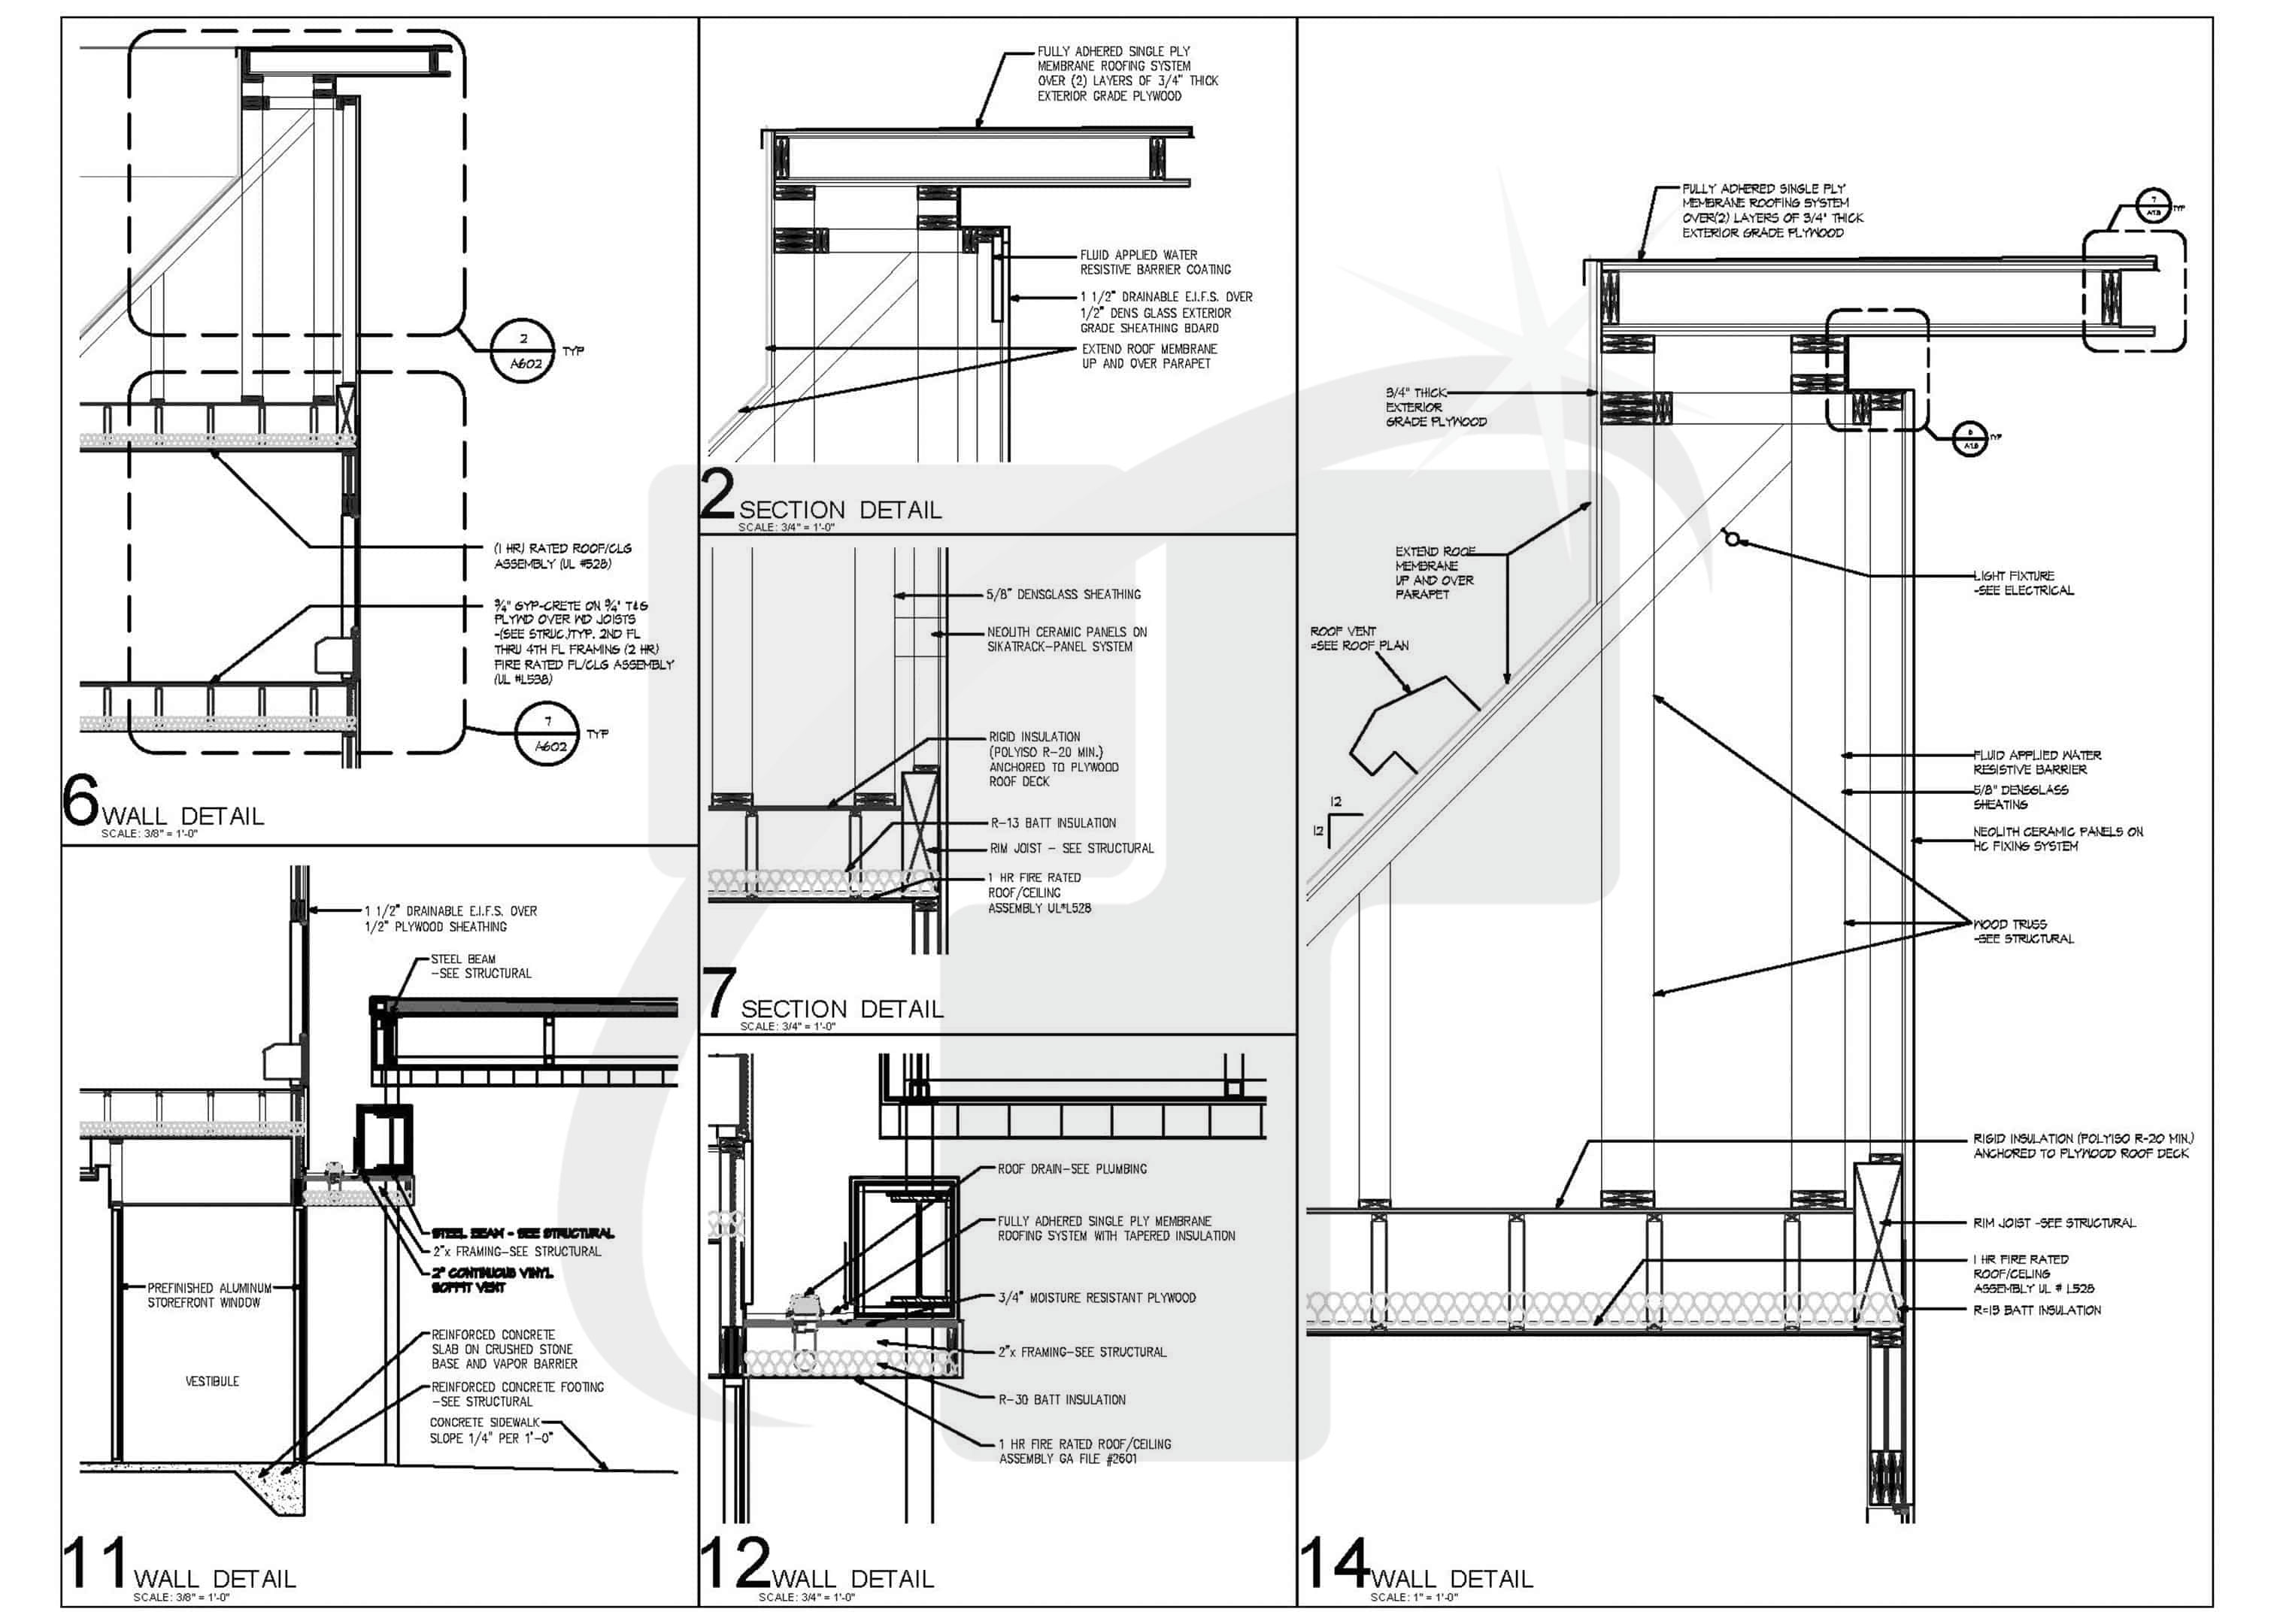 Structural Drawing For Residential Building